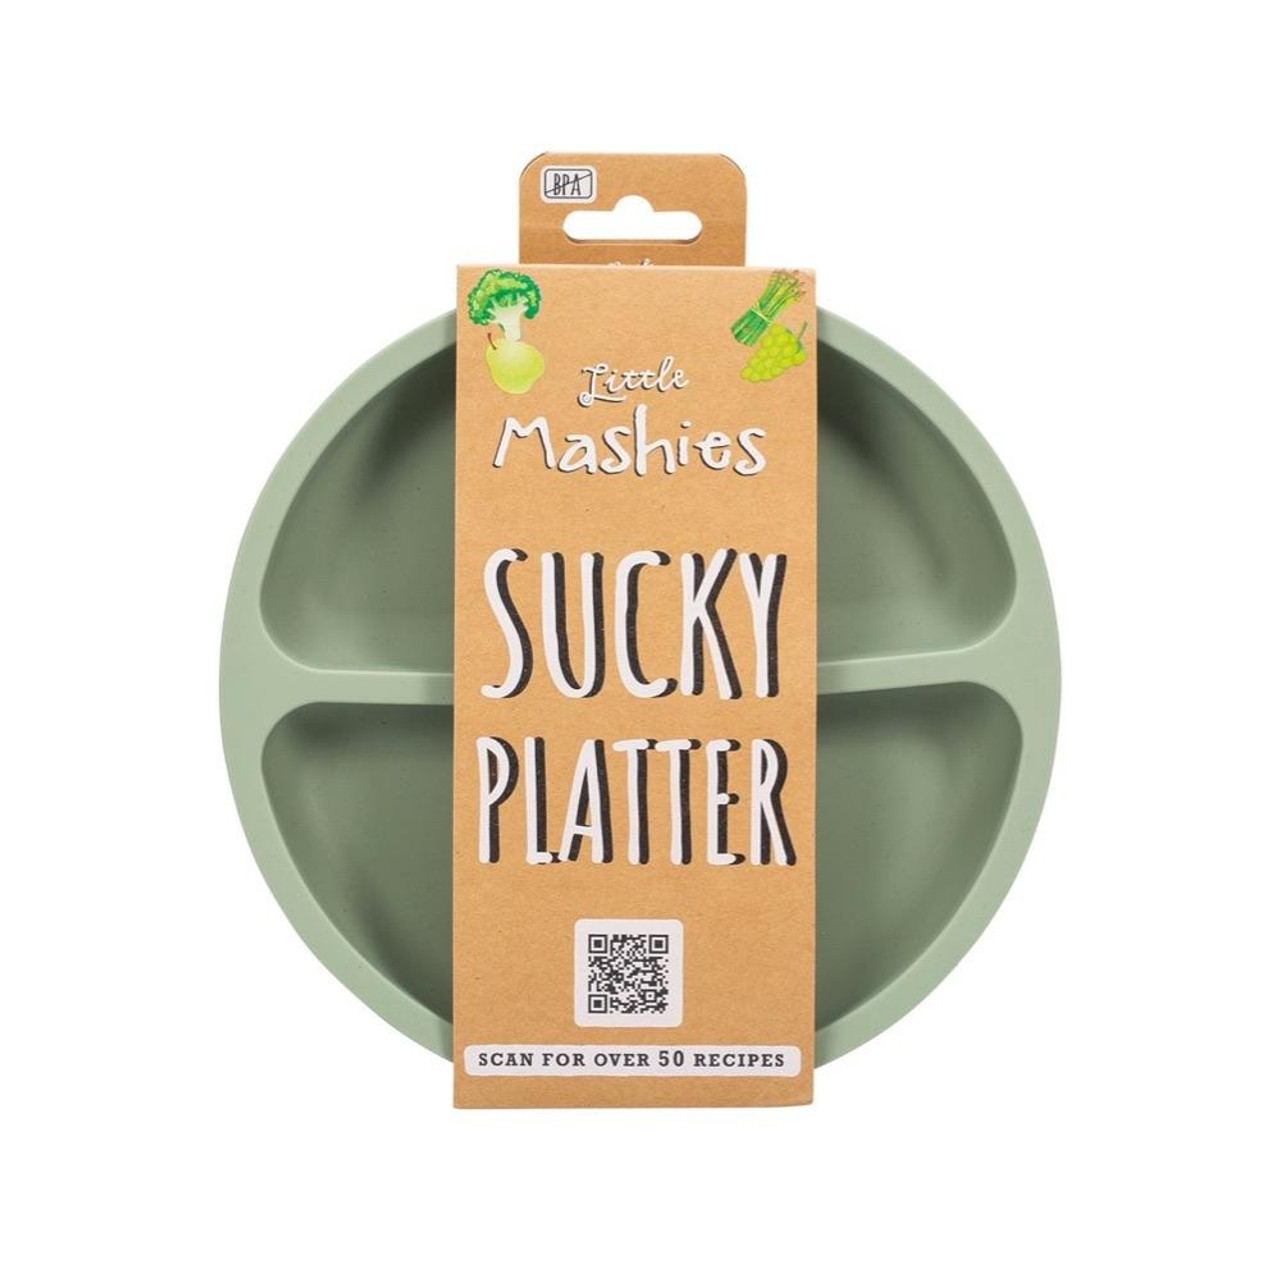 Little Mashies Sucky Platter at Baby Barn Discounts Little Mashies platter is 100% food grade silicone it is BPA free, non toxic and dishwasher safe!